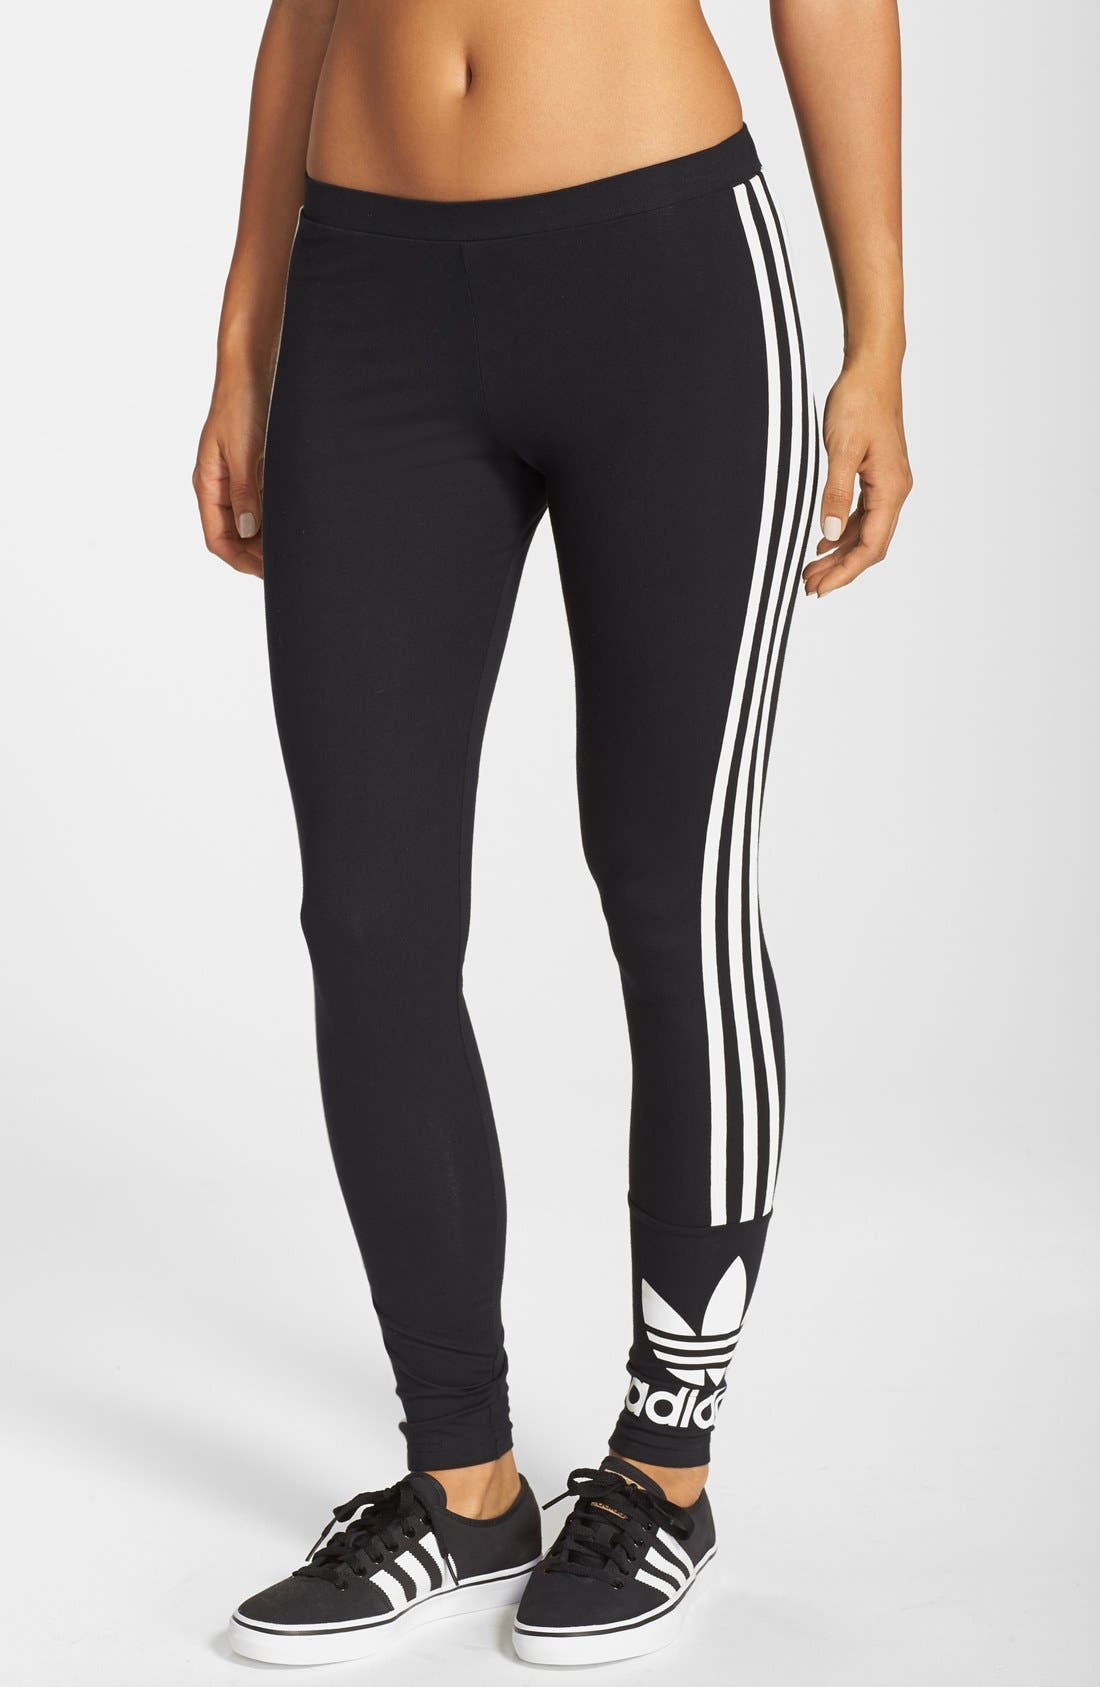 adidas leggings new collection